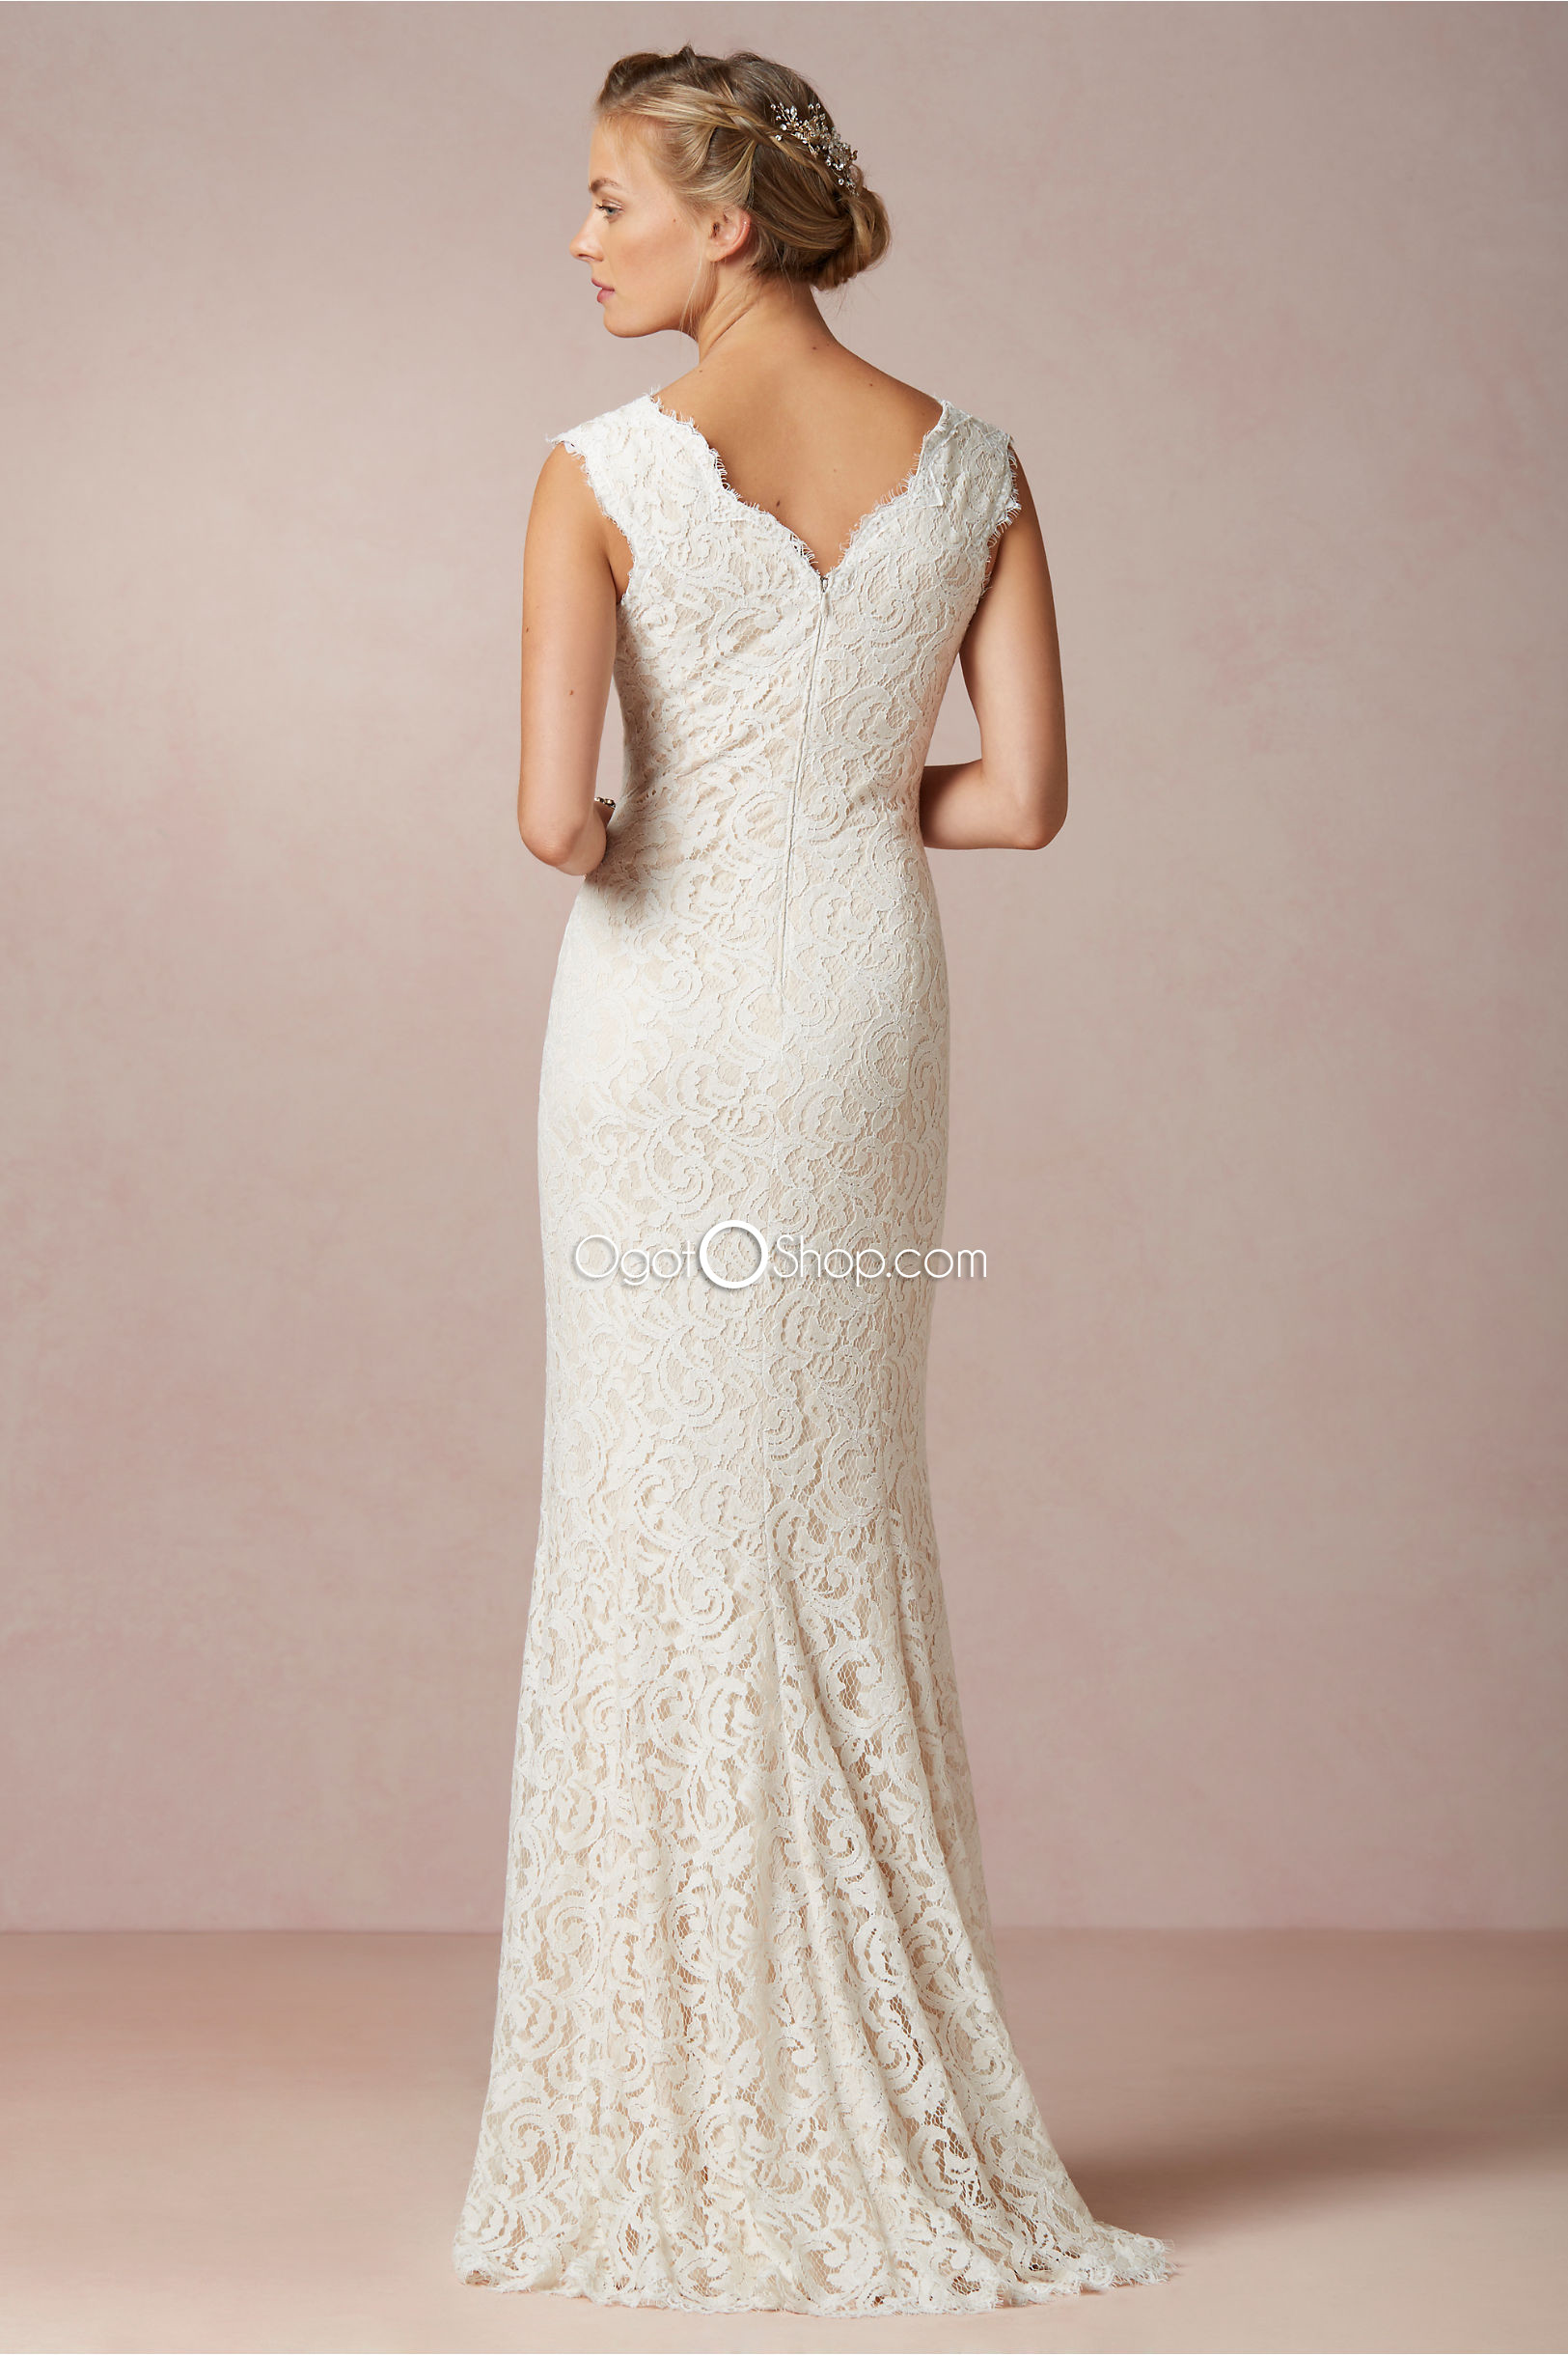 The wedding gown lavish wed for Lace dresses for weddings